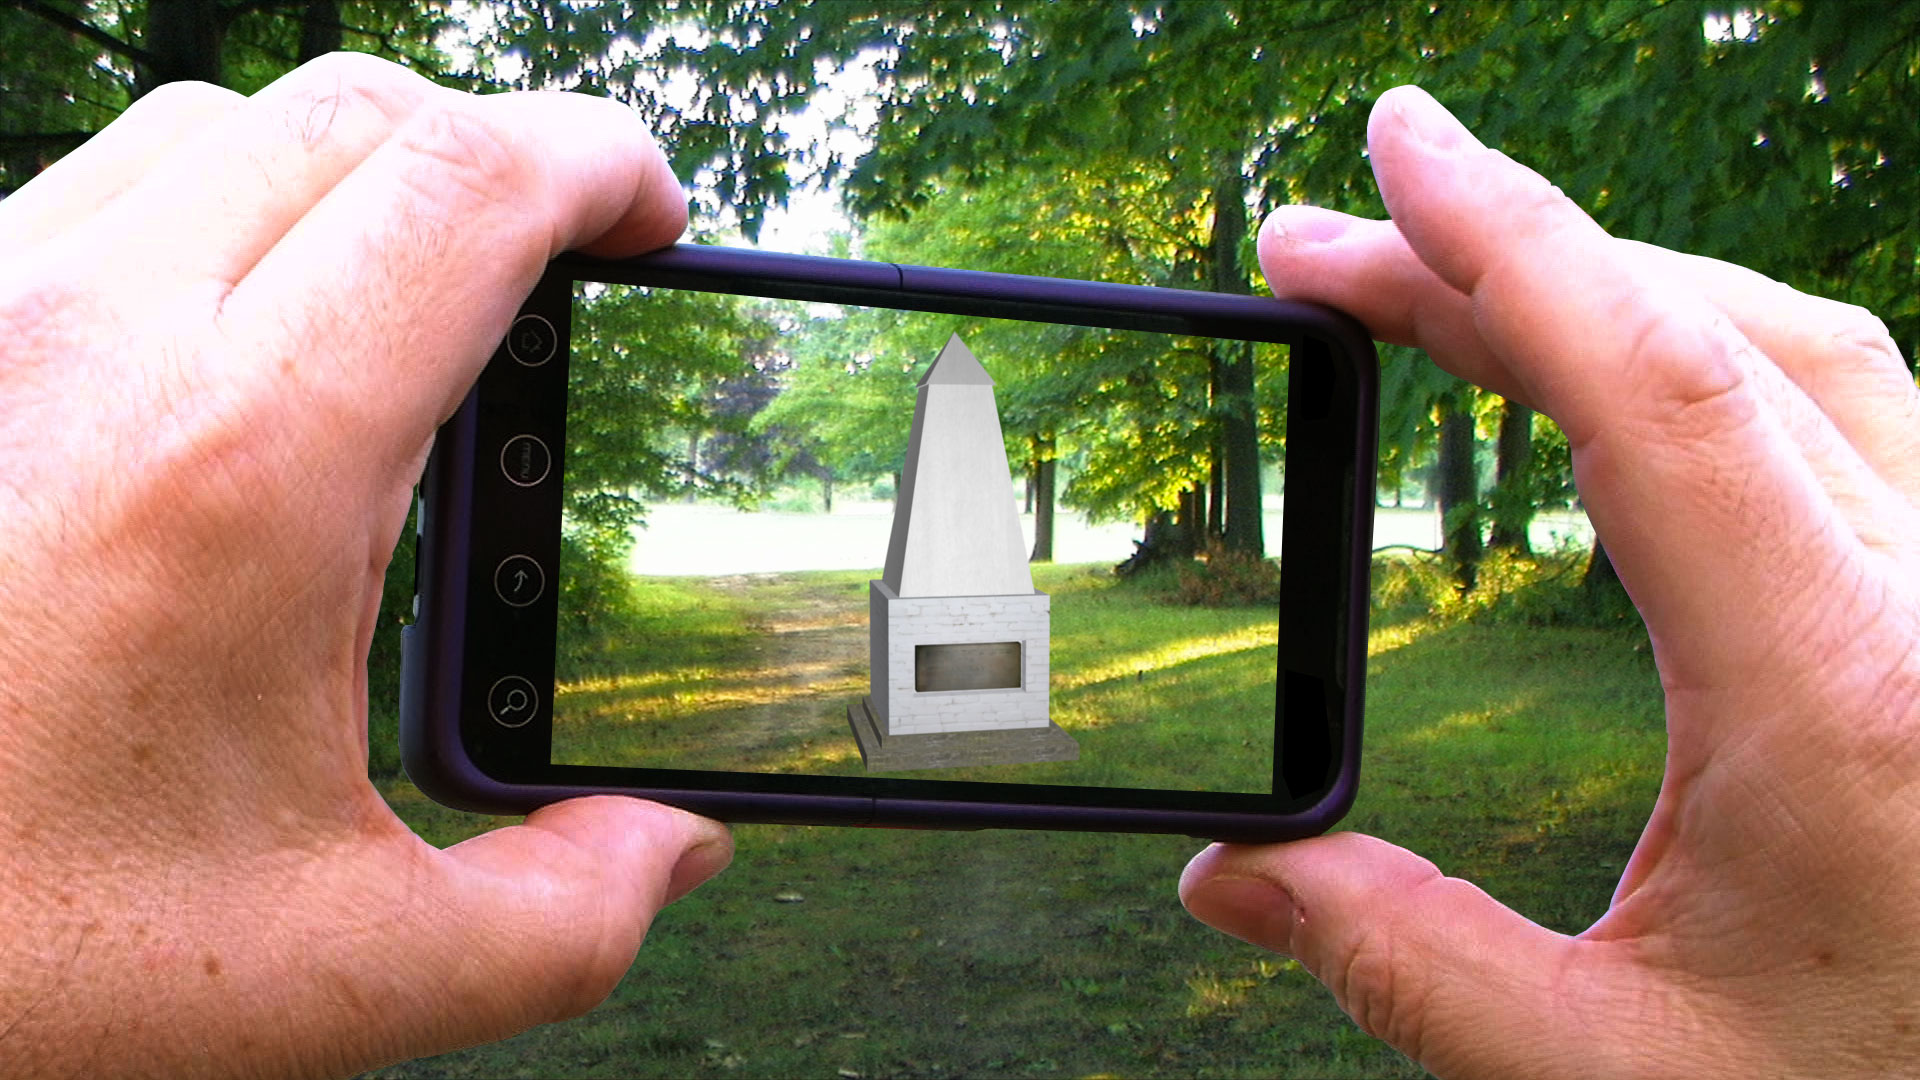 The Ararat Cornerstone Monument as viewed through a smart phone mobile device, 2012.